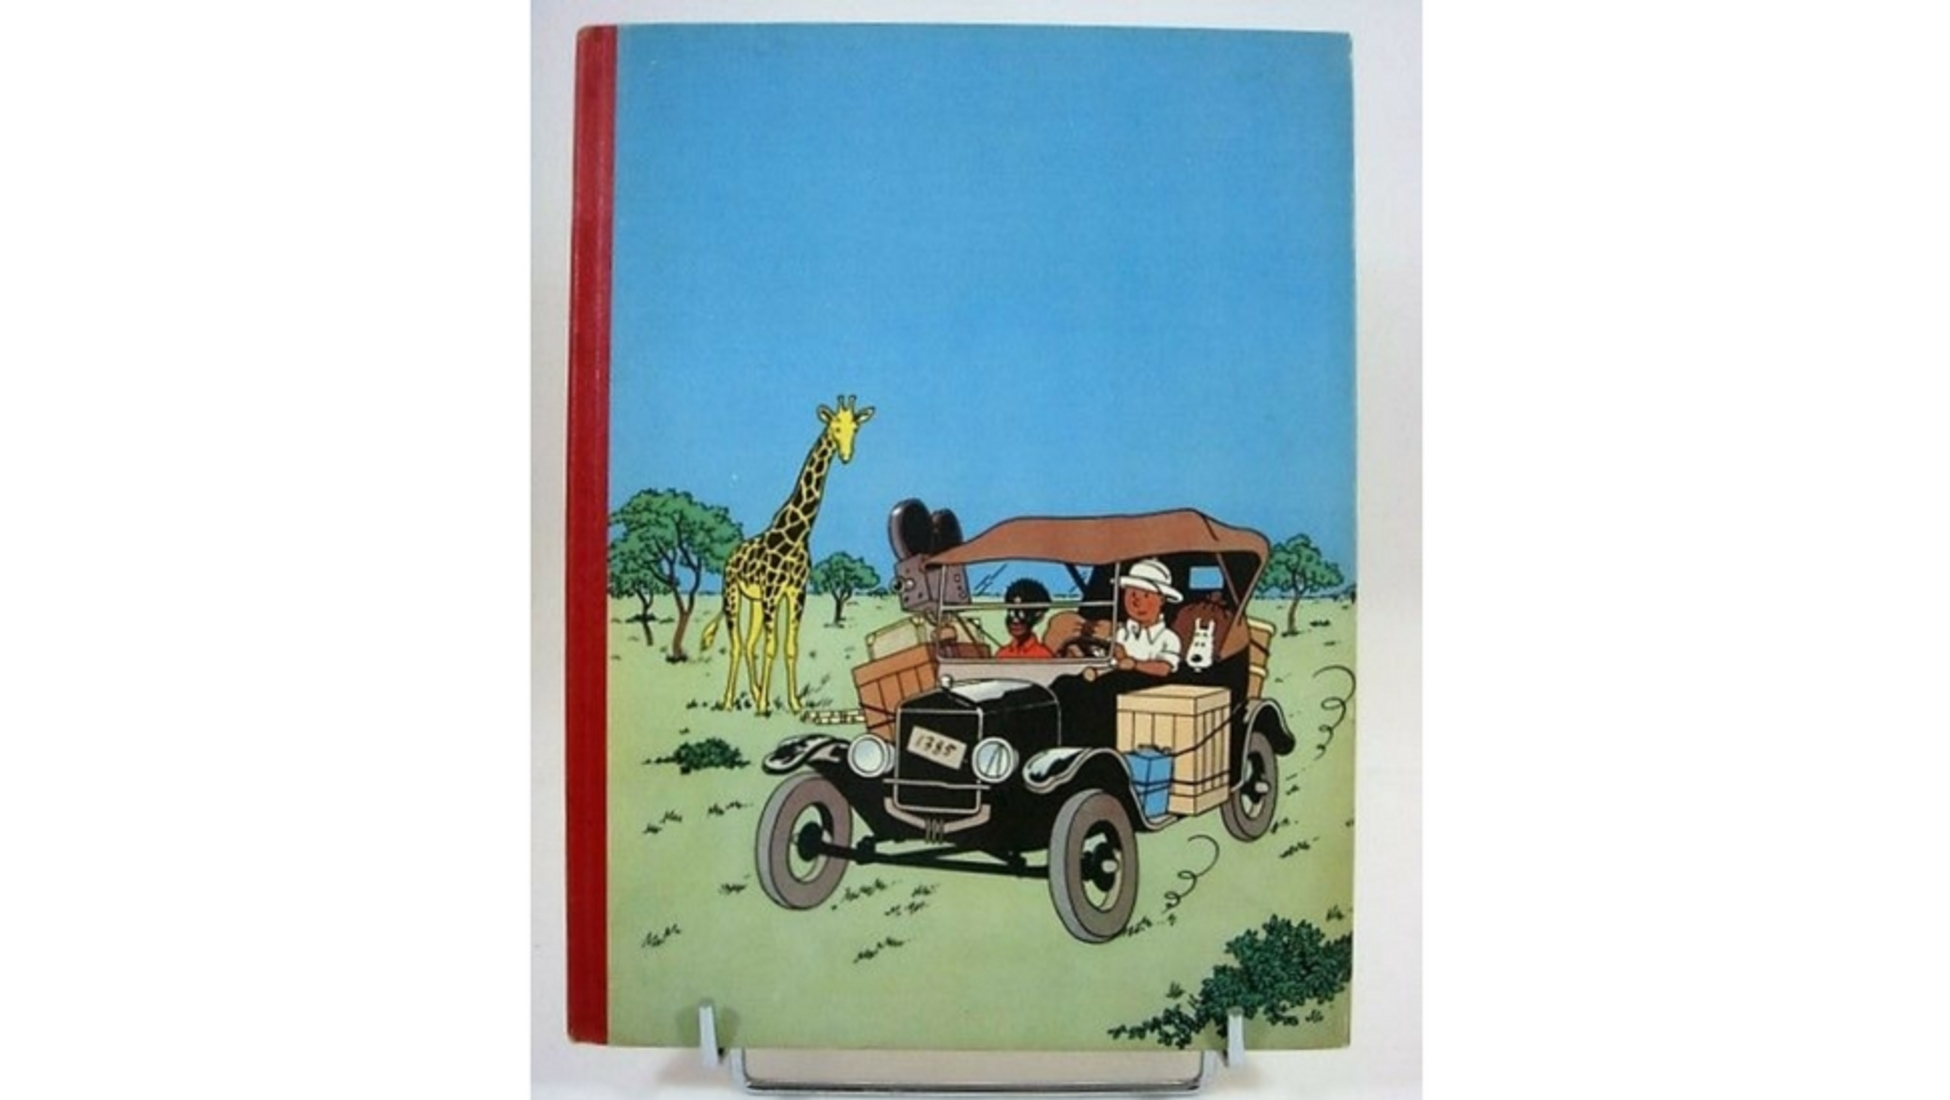 Curious to Know the Value of Your Old Tintin Comic Books? - Catawiki